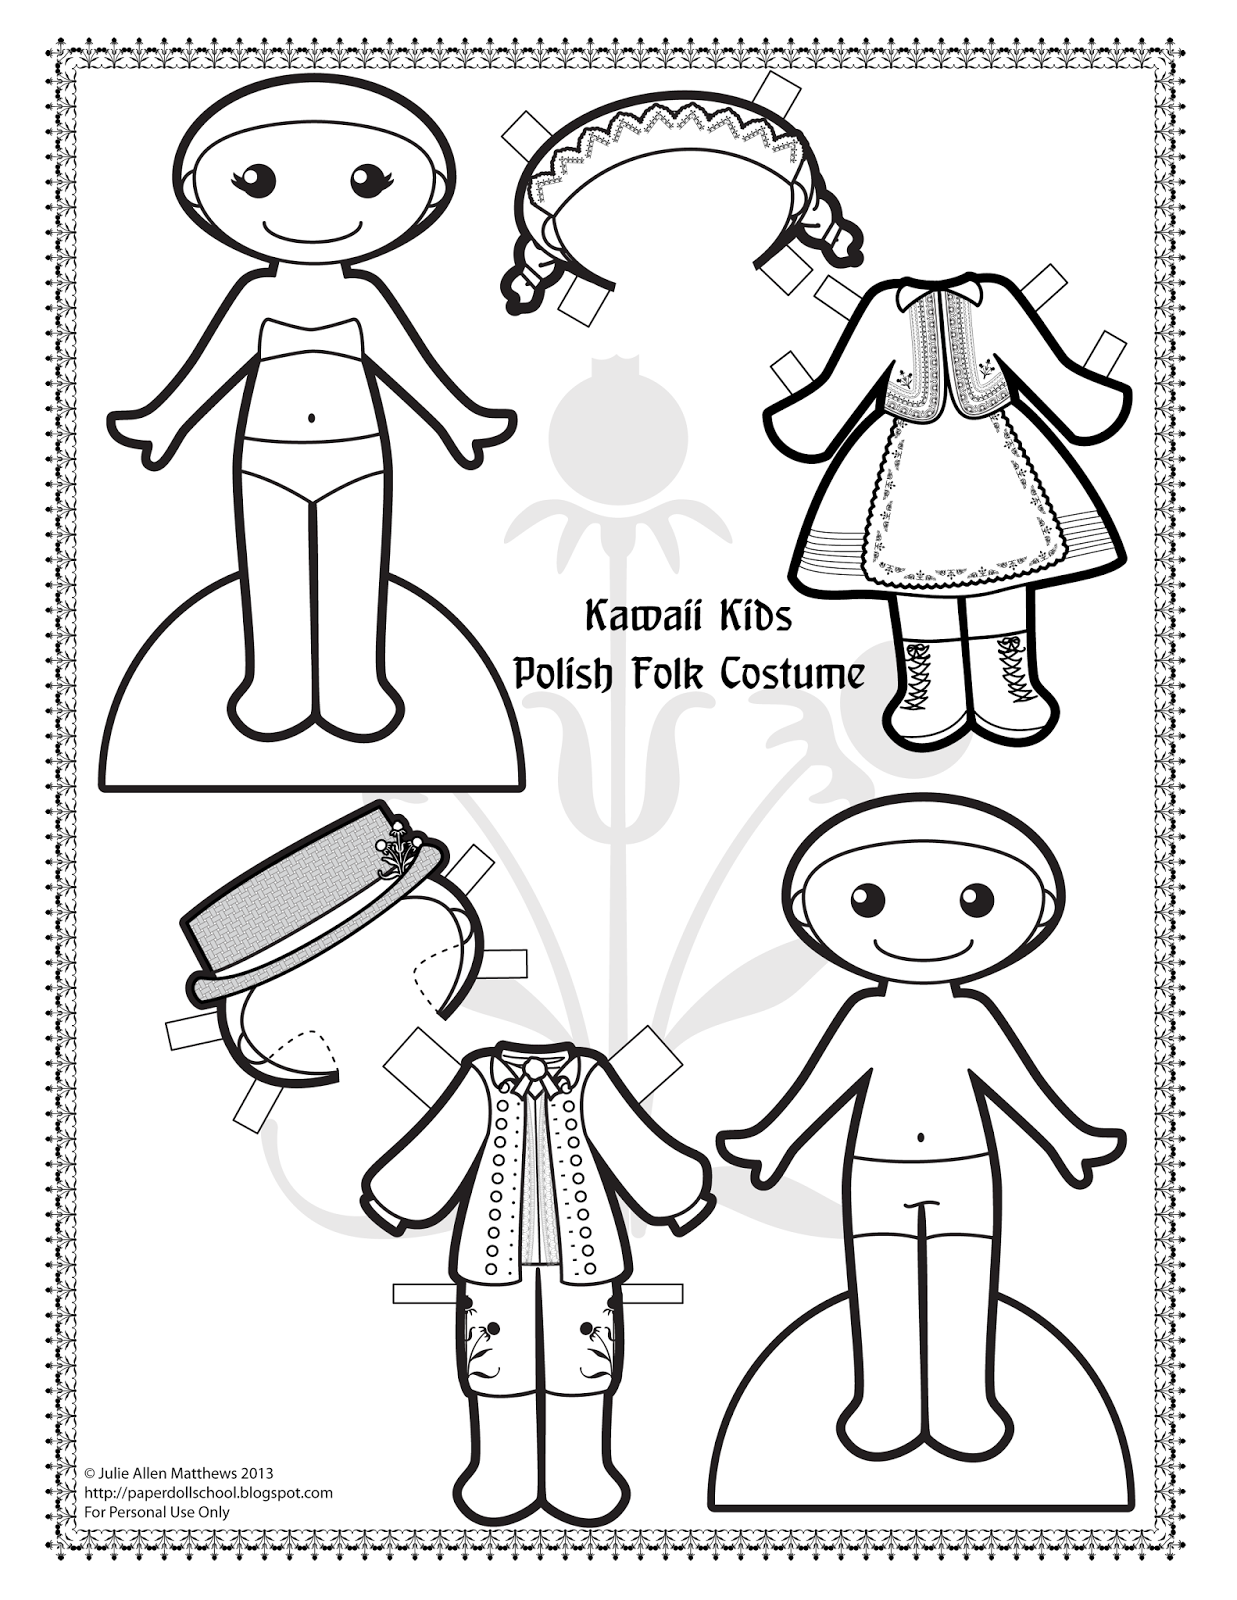 Paper Doll School Kawaii Kids 28